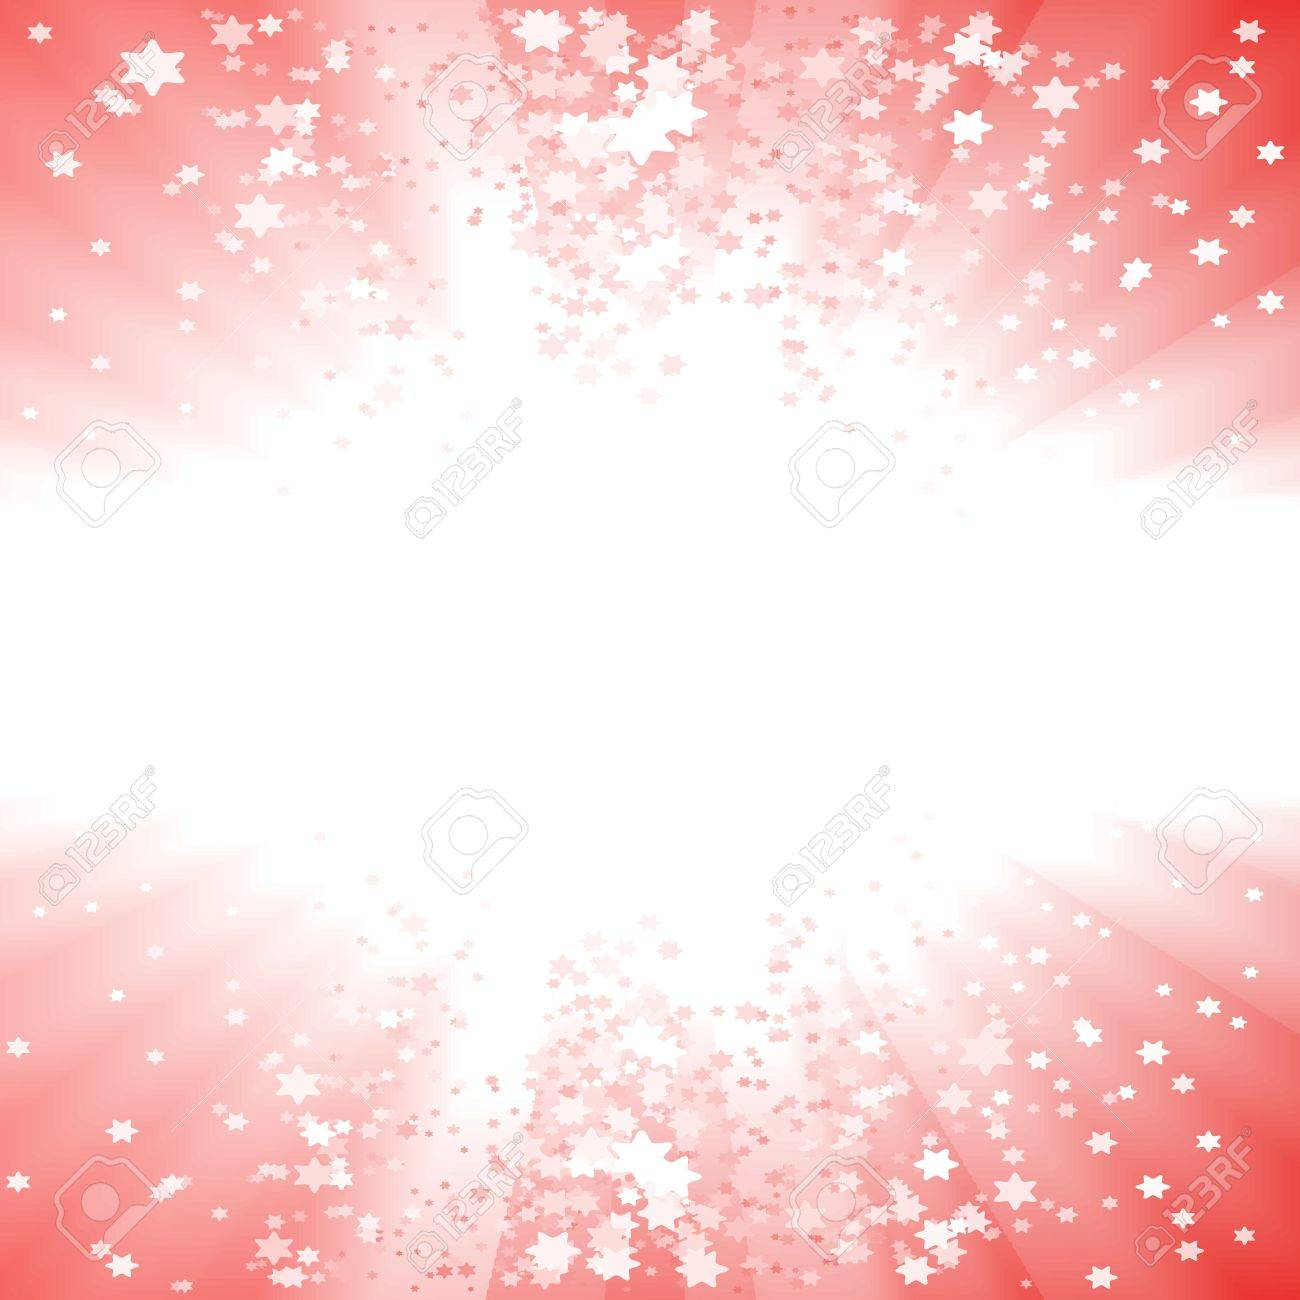 Vector illustration of a magical red Christmas explosion of stars. Glowing light center for custom elements. - 4014306